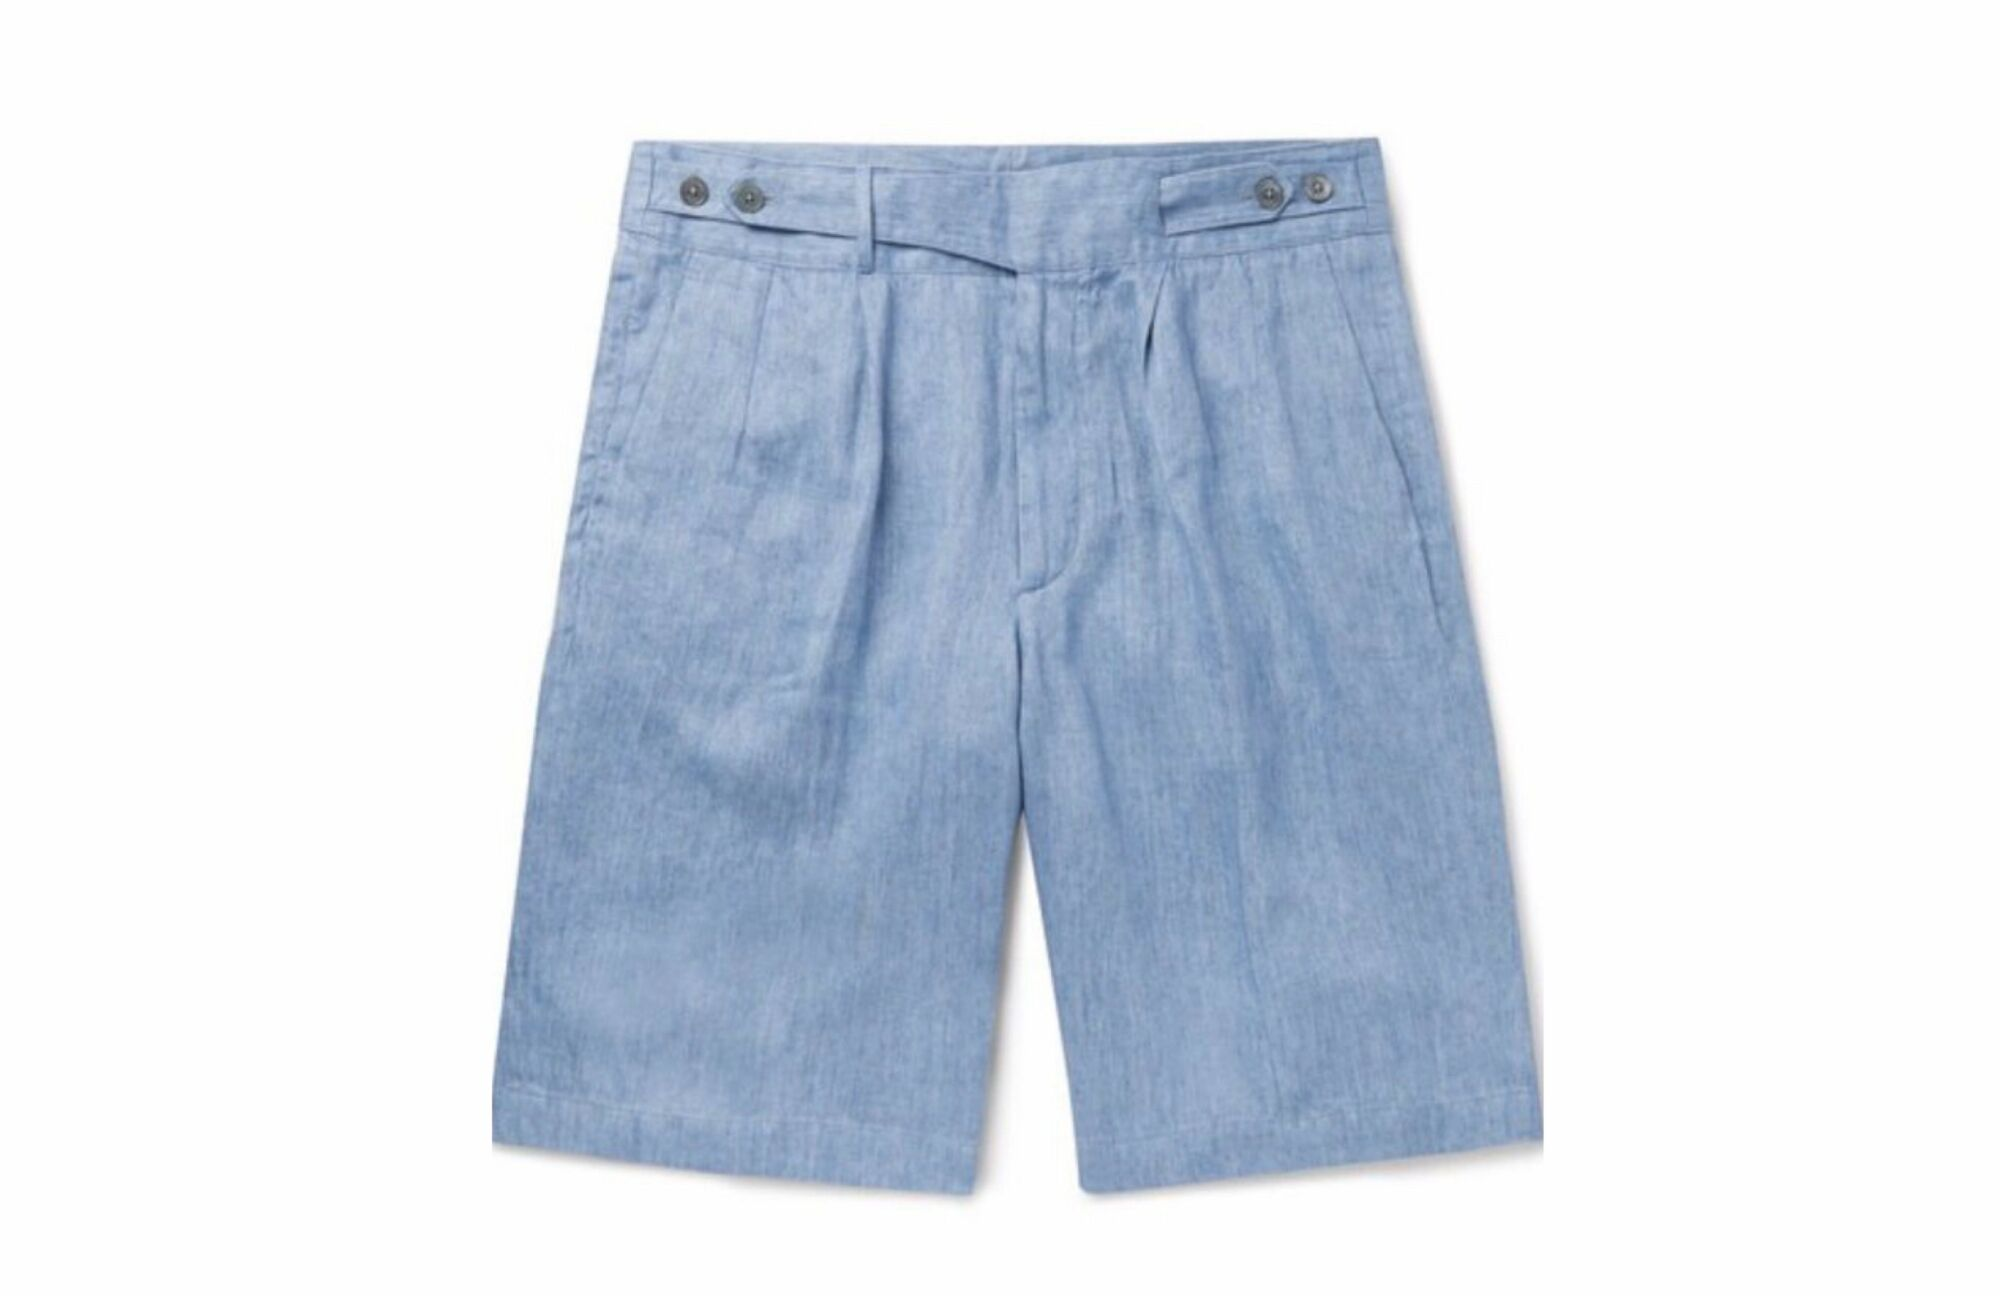 Ermenegildo Zegna blue Denim Shorts